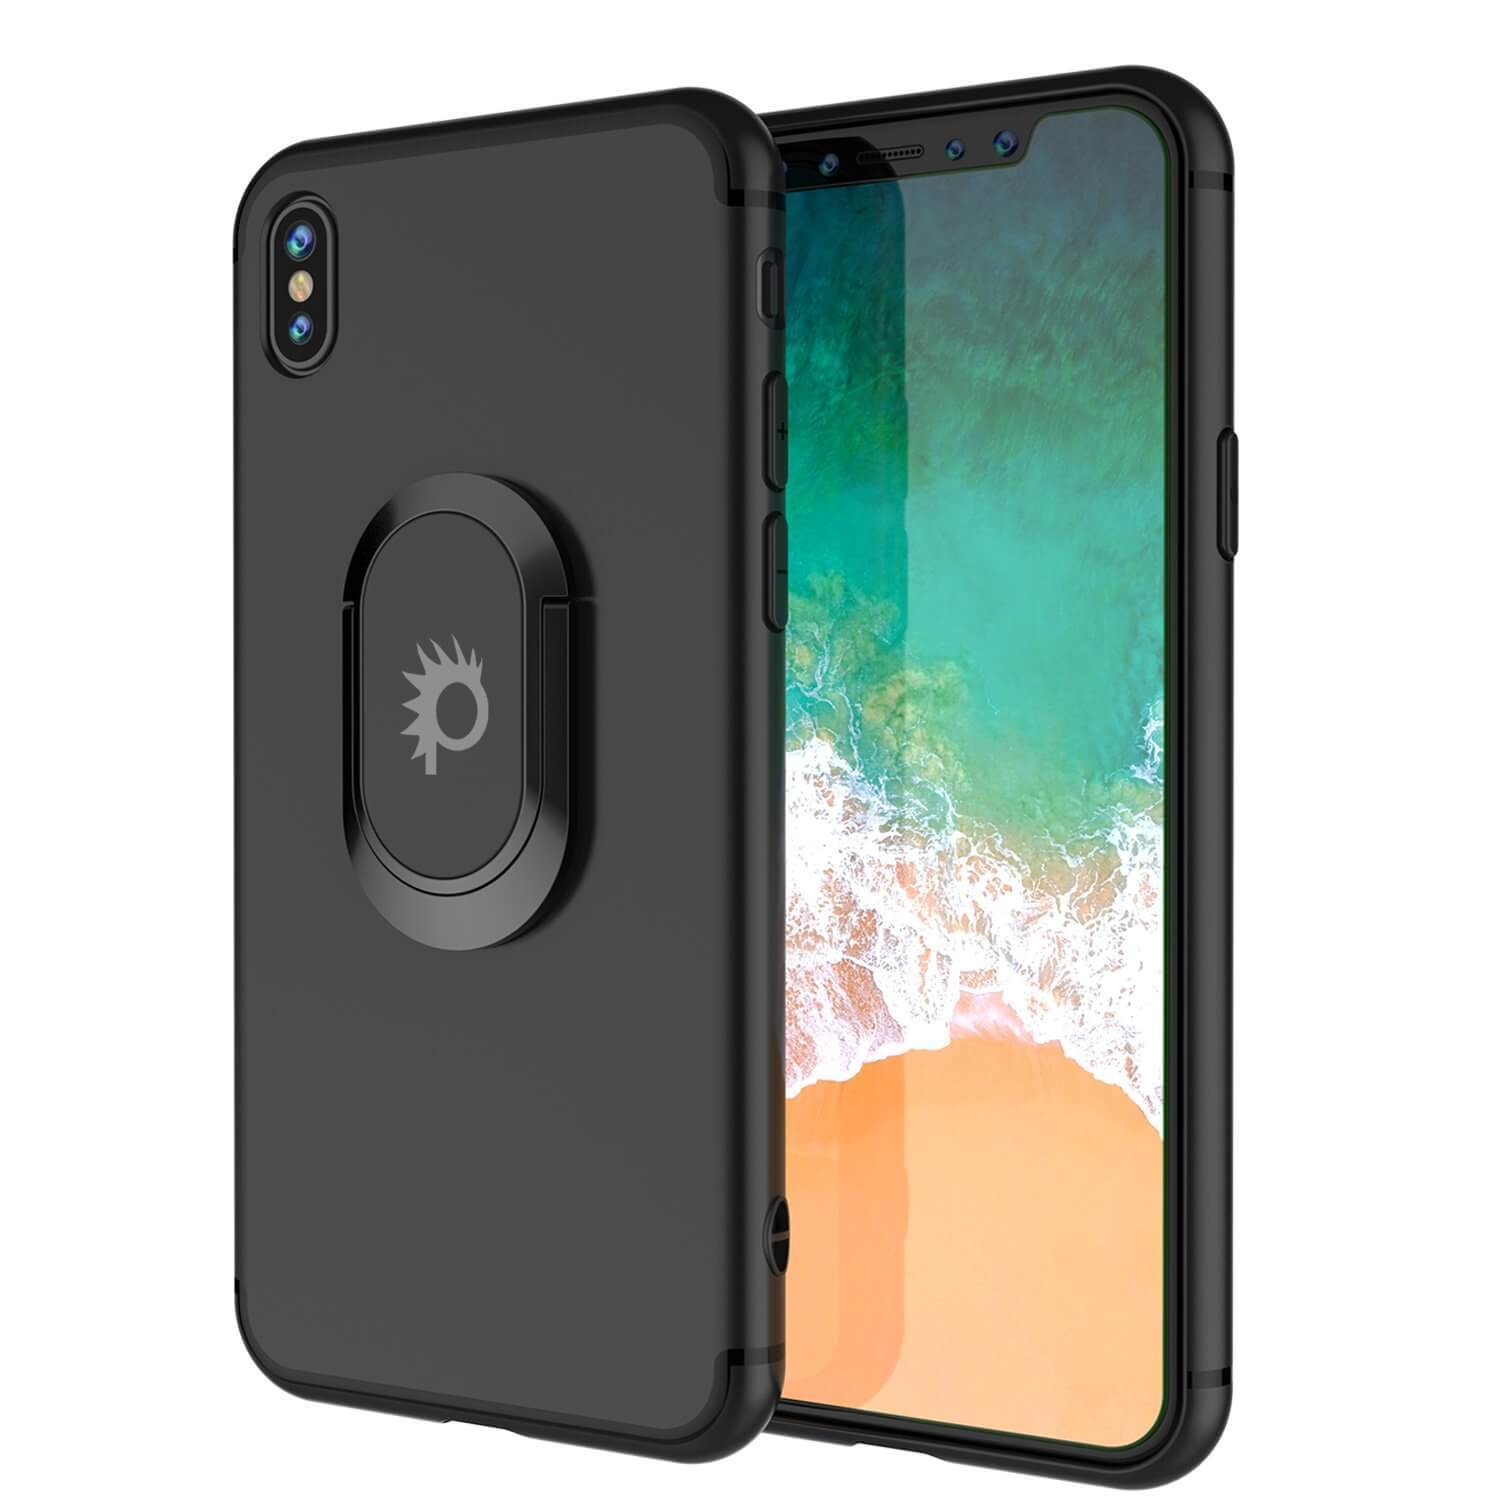 iPhone XS Case, Punkcase Magnetix Protective TPU Cover W/ Kickstand, Tempered Glass Screen Protector [Black]